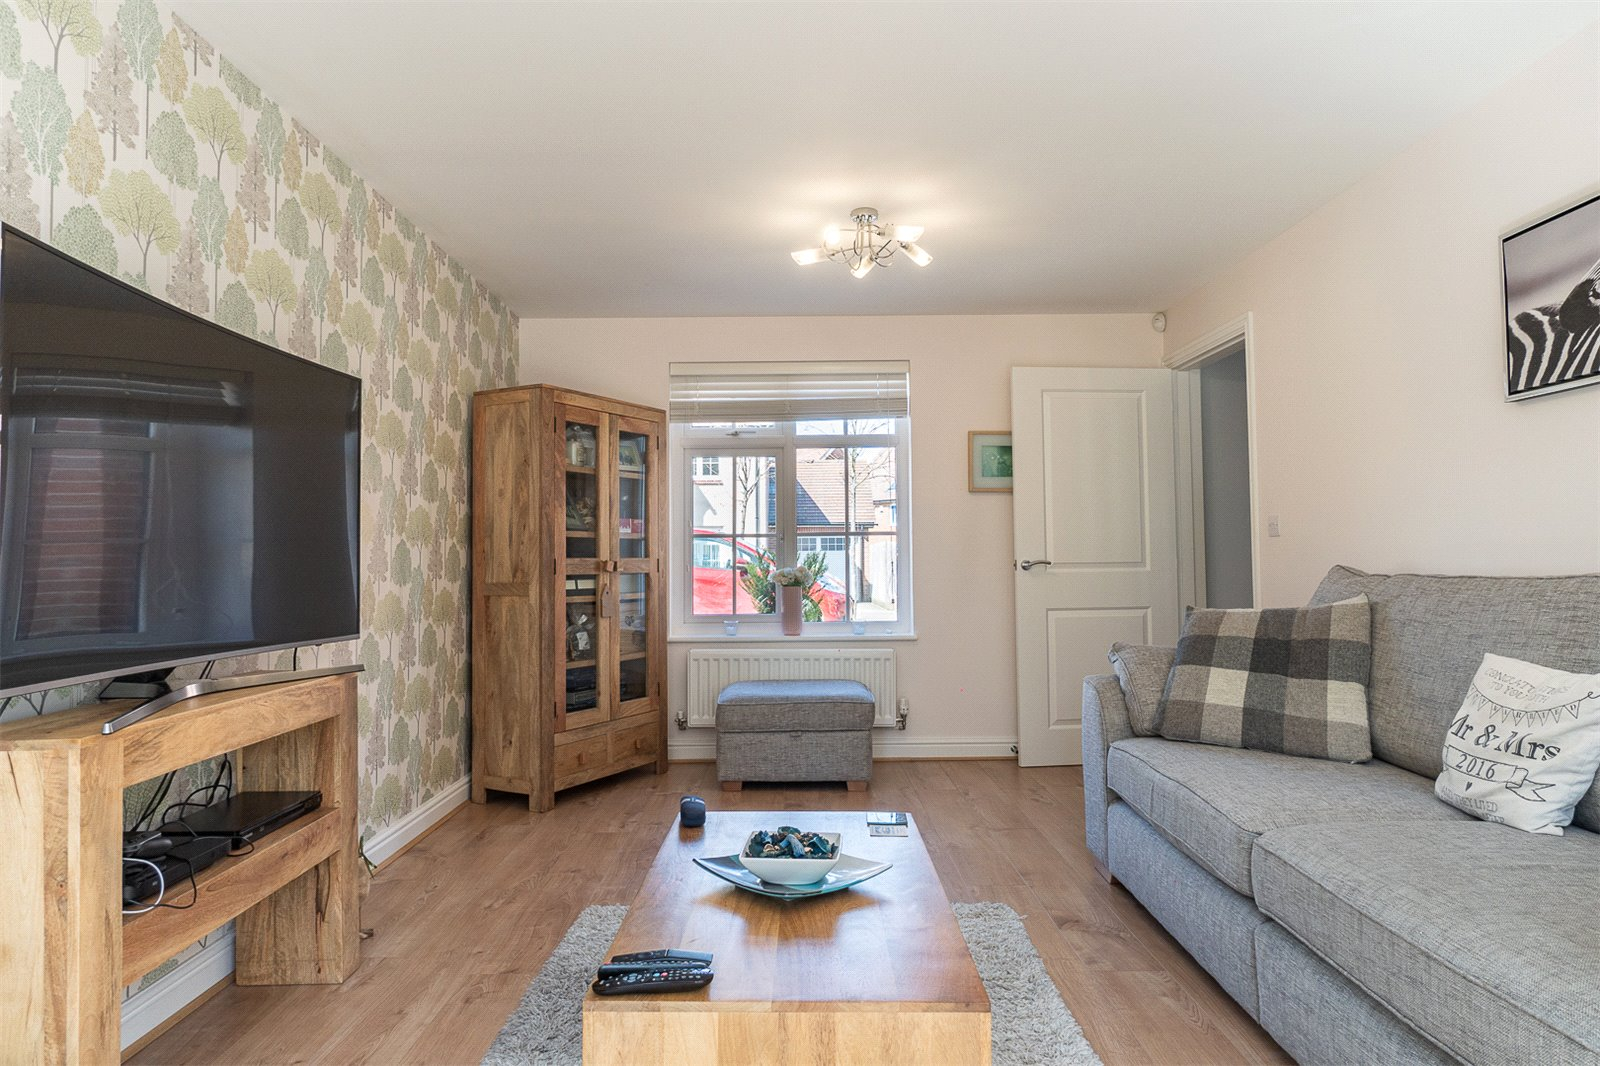 4 bed house for sale in Magdalen Gardens, Maidstone  - Property Image 1